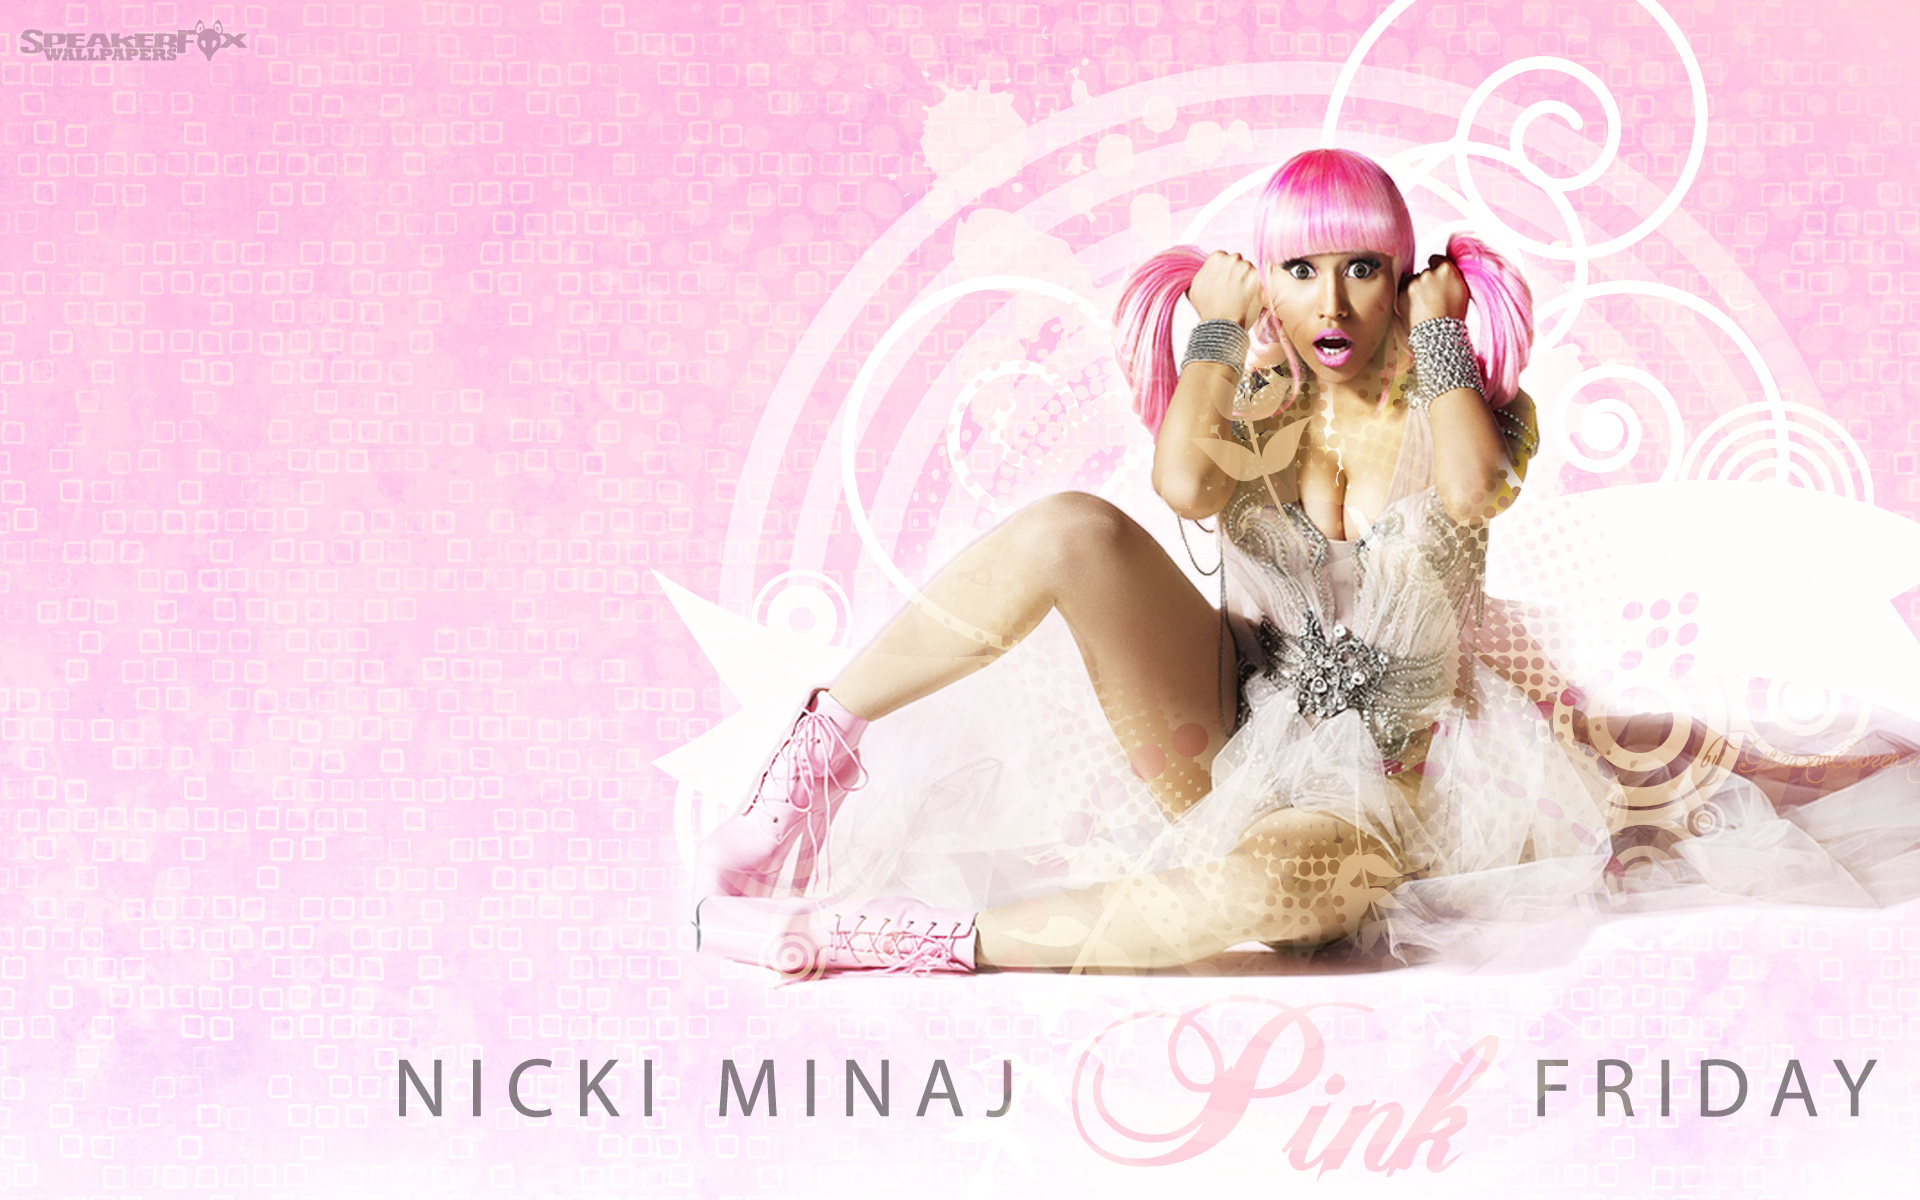 Nicki Minaj Pink Friday Nicki minaj pink friday 1920x1200